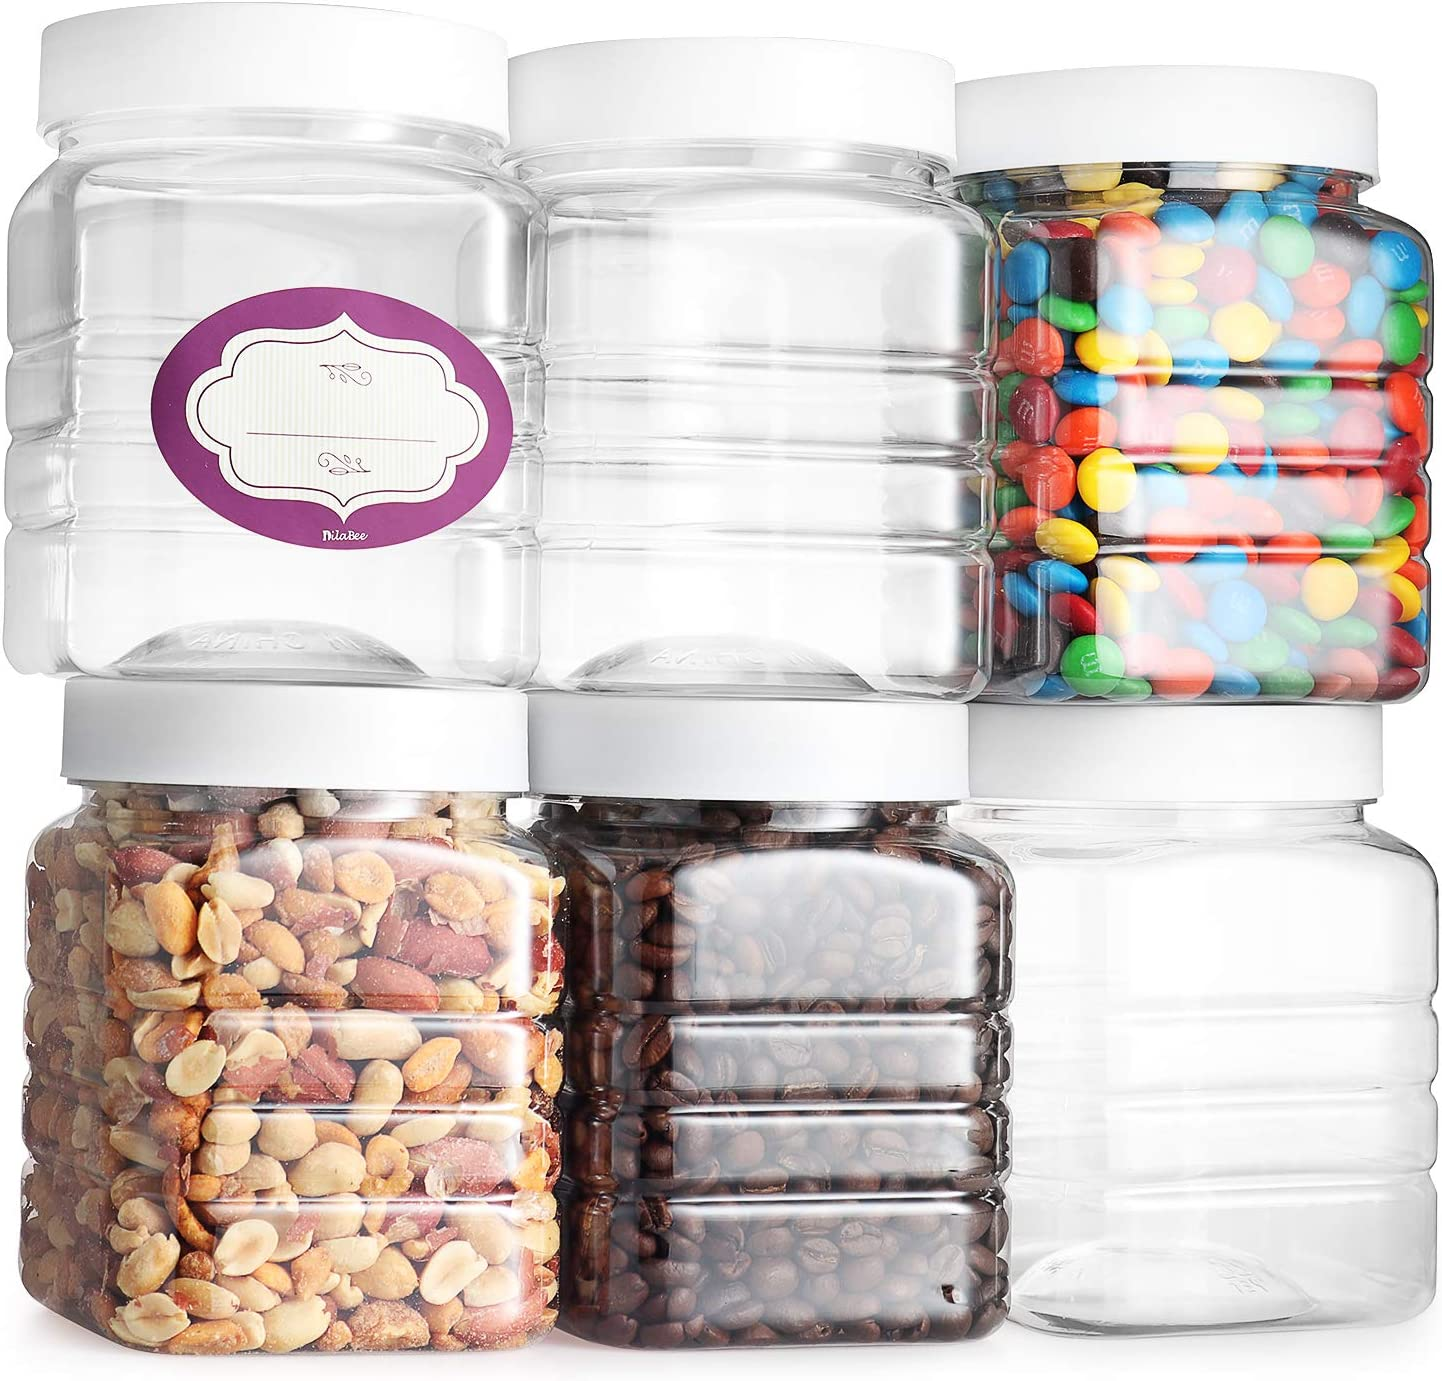 Pack of 6 - Clear Empty Plastic Storage Containers with Lids - Square Pantry Containers - 32 Oz Jars with Air Tight Lids and Labels – BPA Free Plastic Jar - Paint Storage Containers